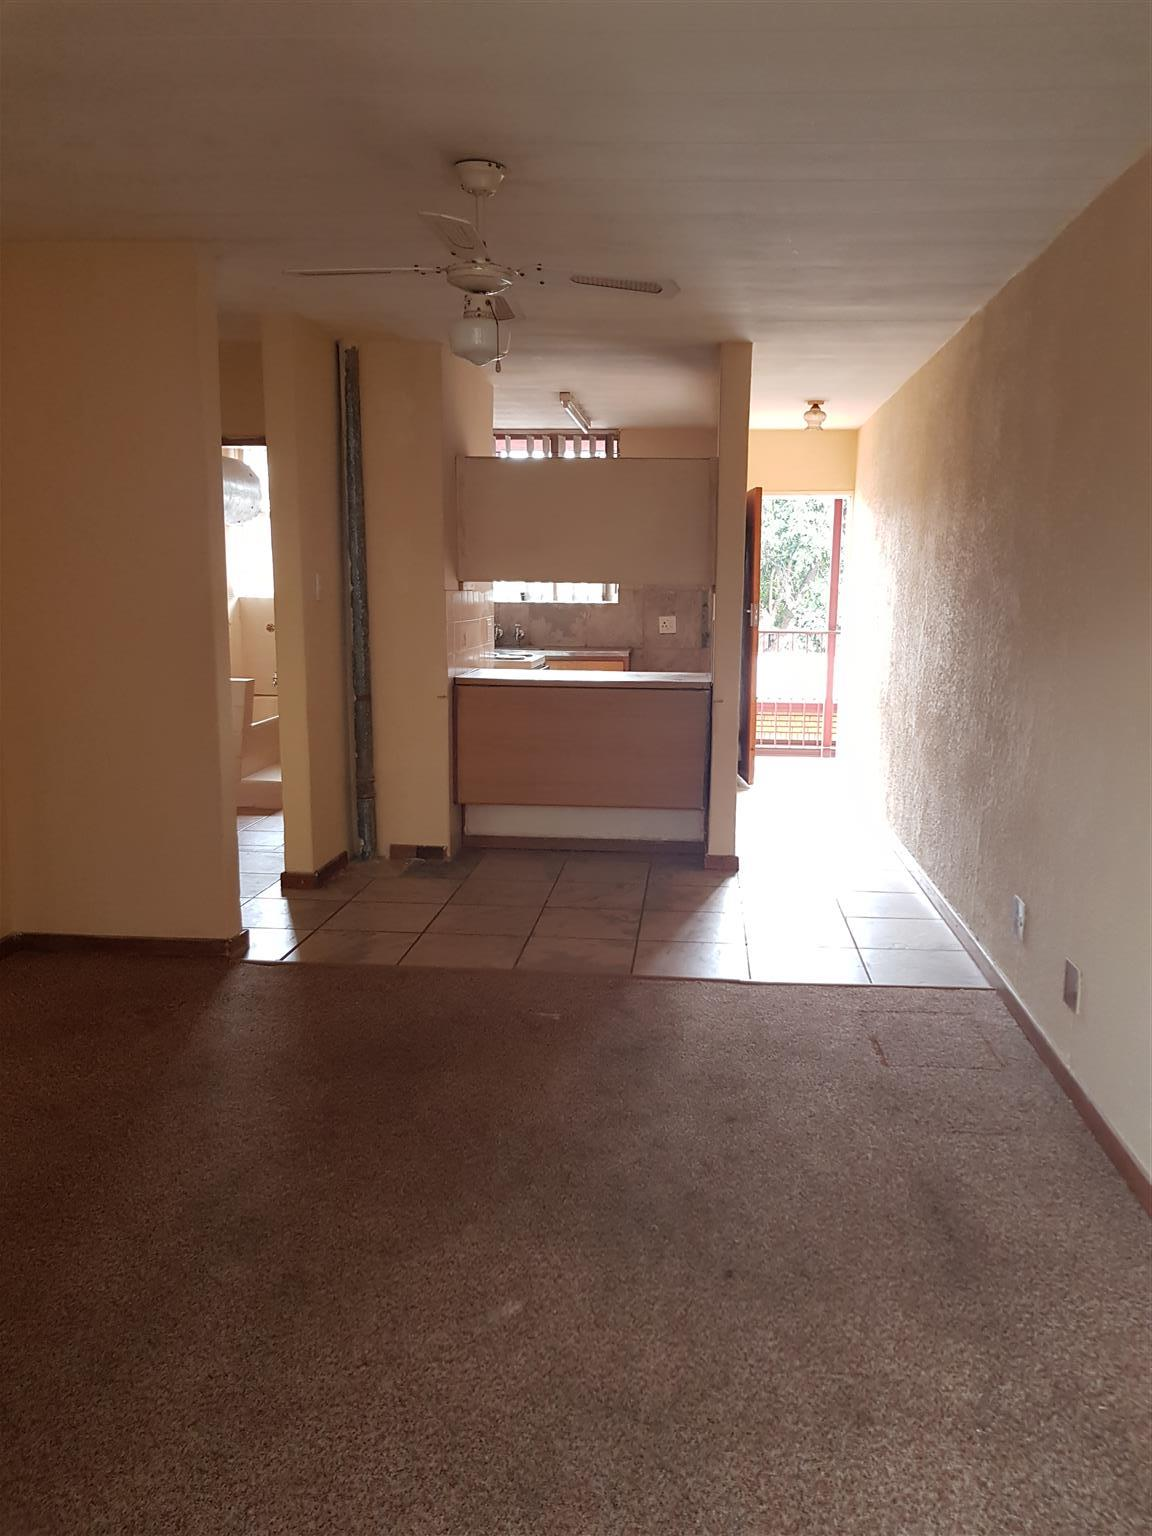 2 Bed Room  For sale